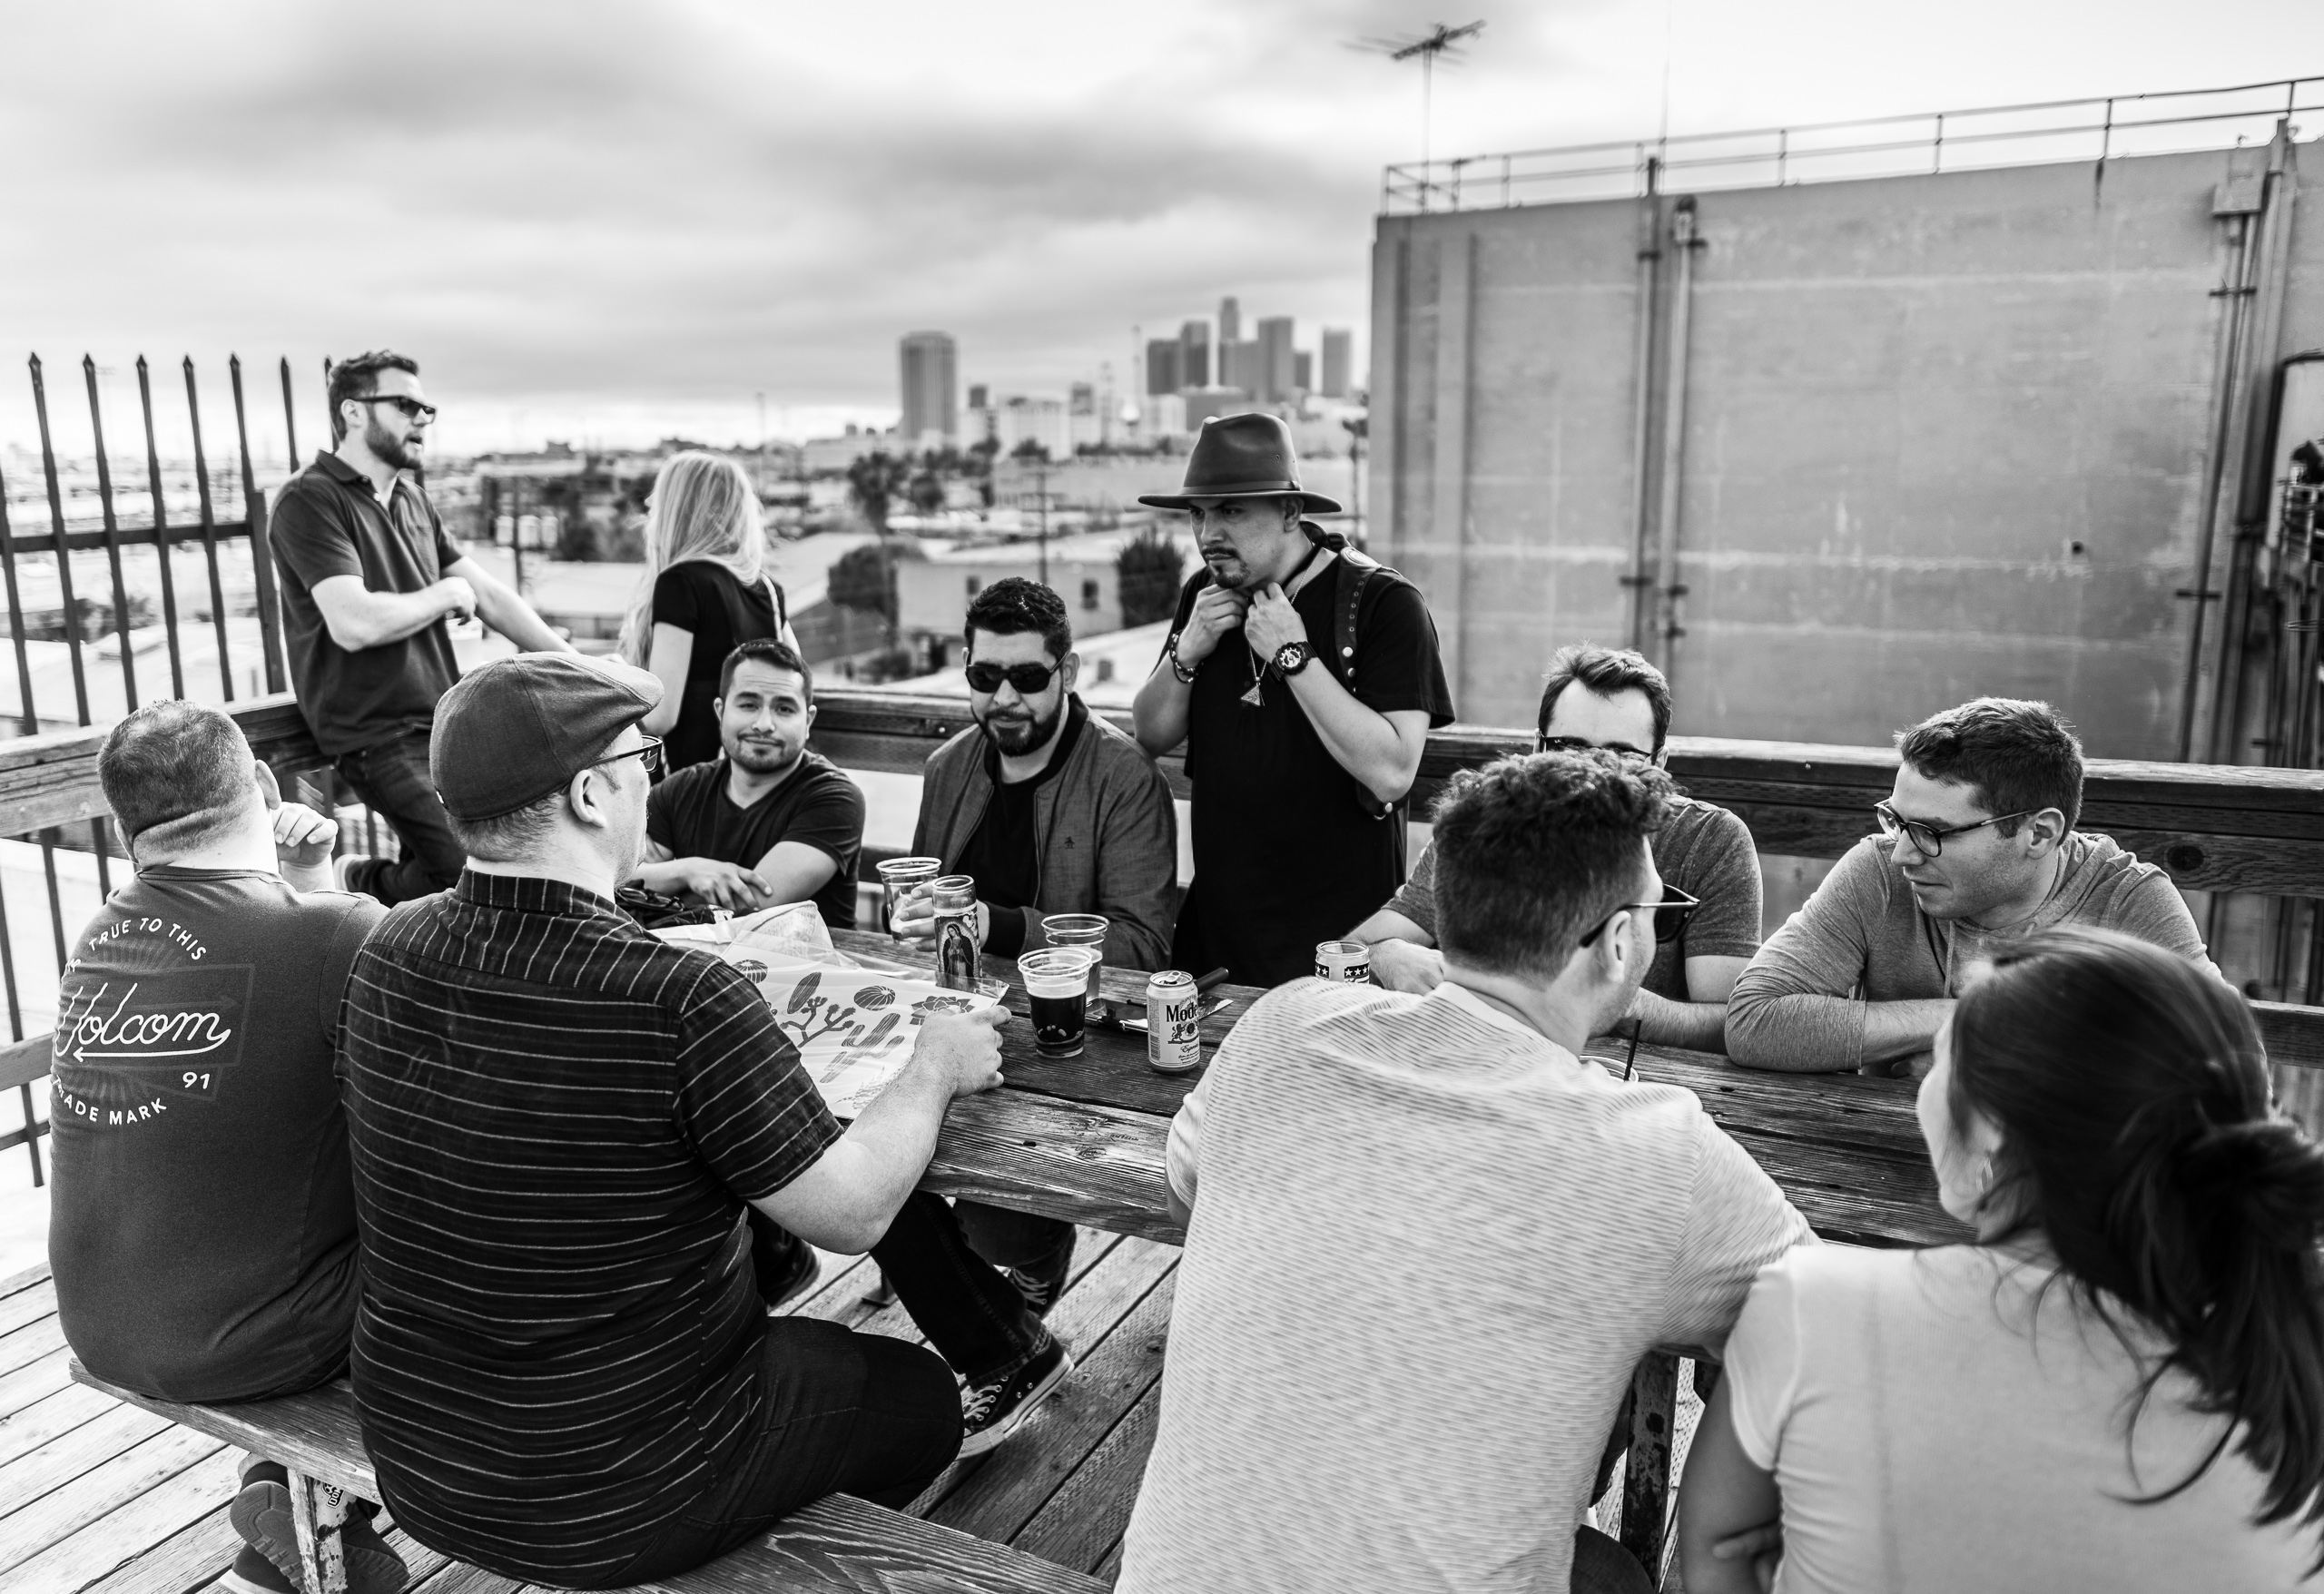 a group of people sit at a wooden table on the roof of one of the buildings at The Brewery Artist's Colony in Downtown Los Angeles. They drink beer and have an afternoon conversation. City hall and the other Downtown Los Angeles skyscrapers are off in the distance under a cloud-filled sky.